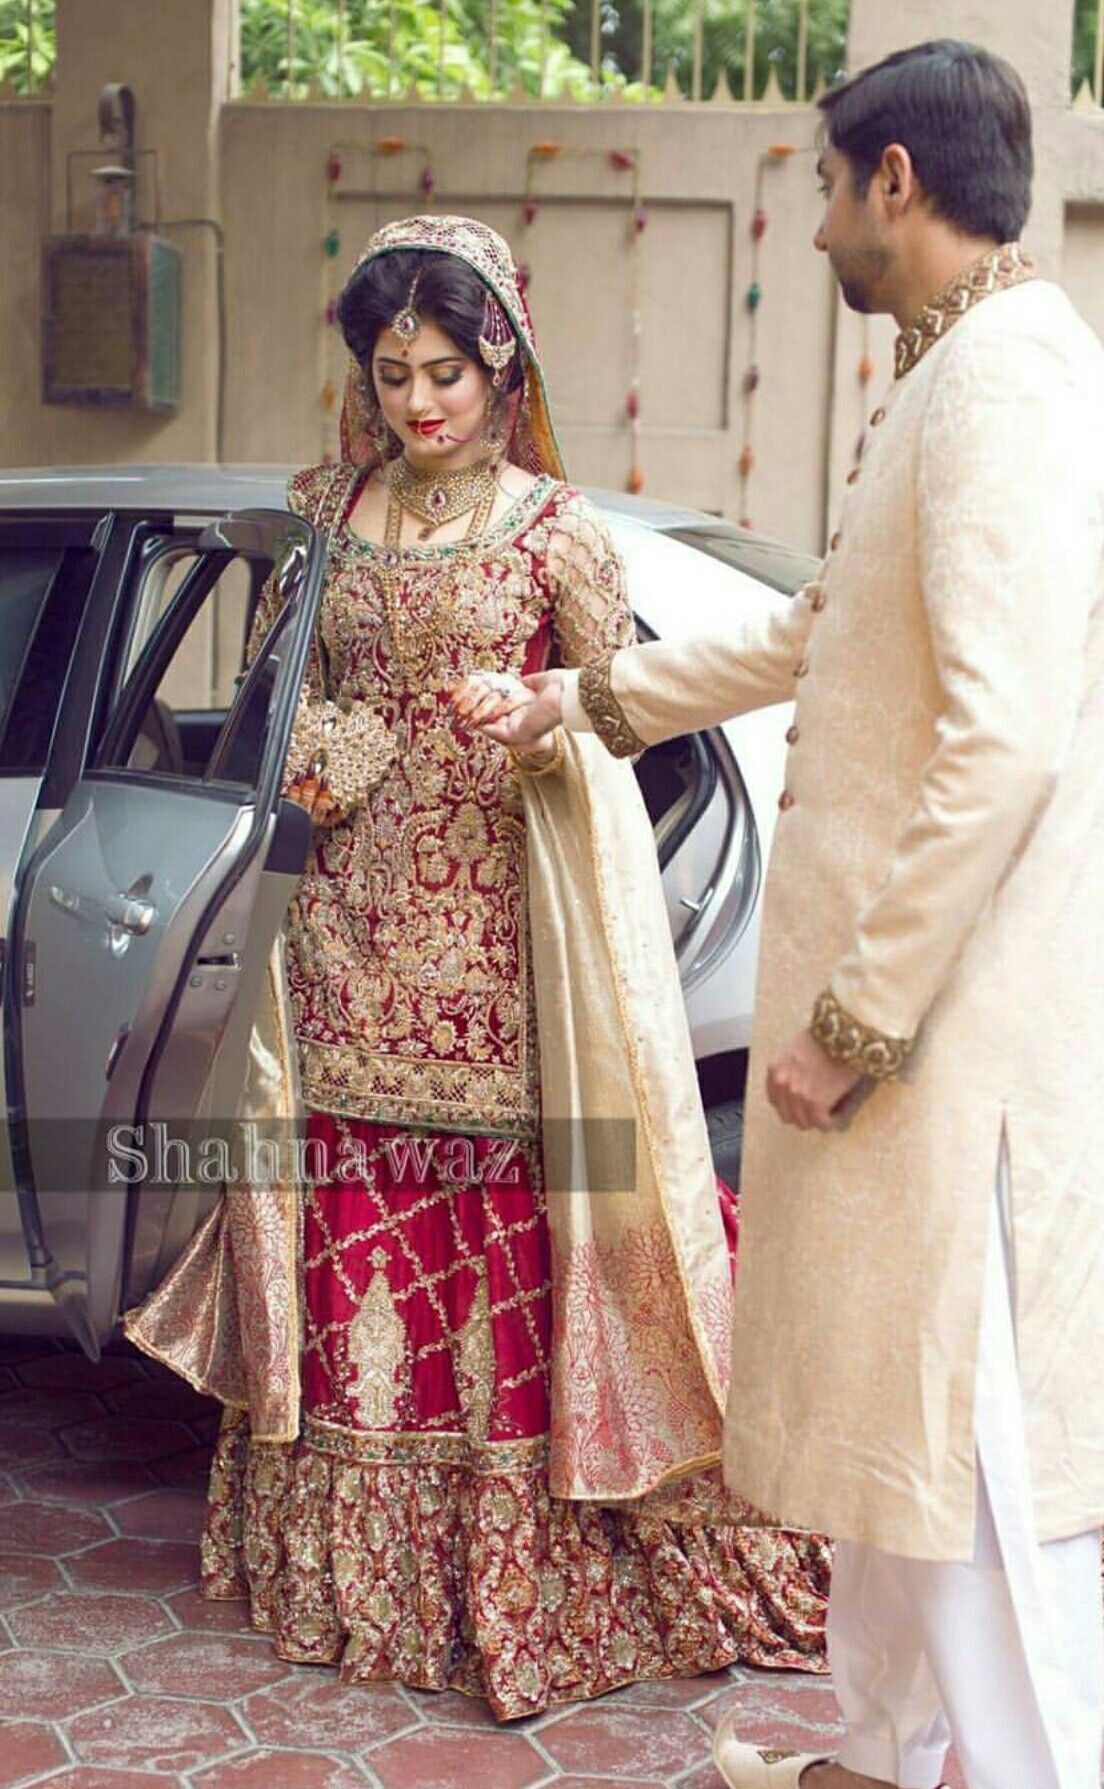 dfebba62c6 Asian Wedding Dress Pakistani, Pakistani Dress Design, Pakistan Bride,